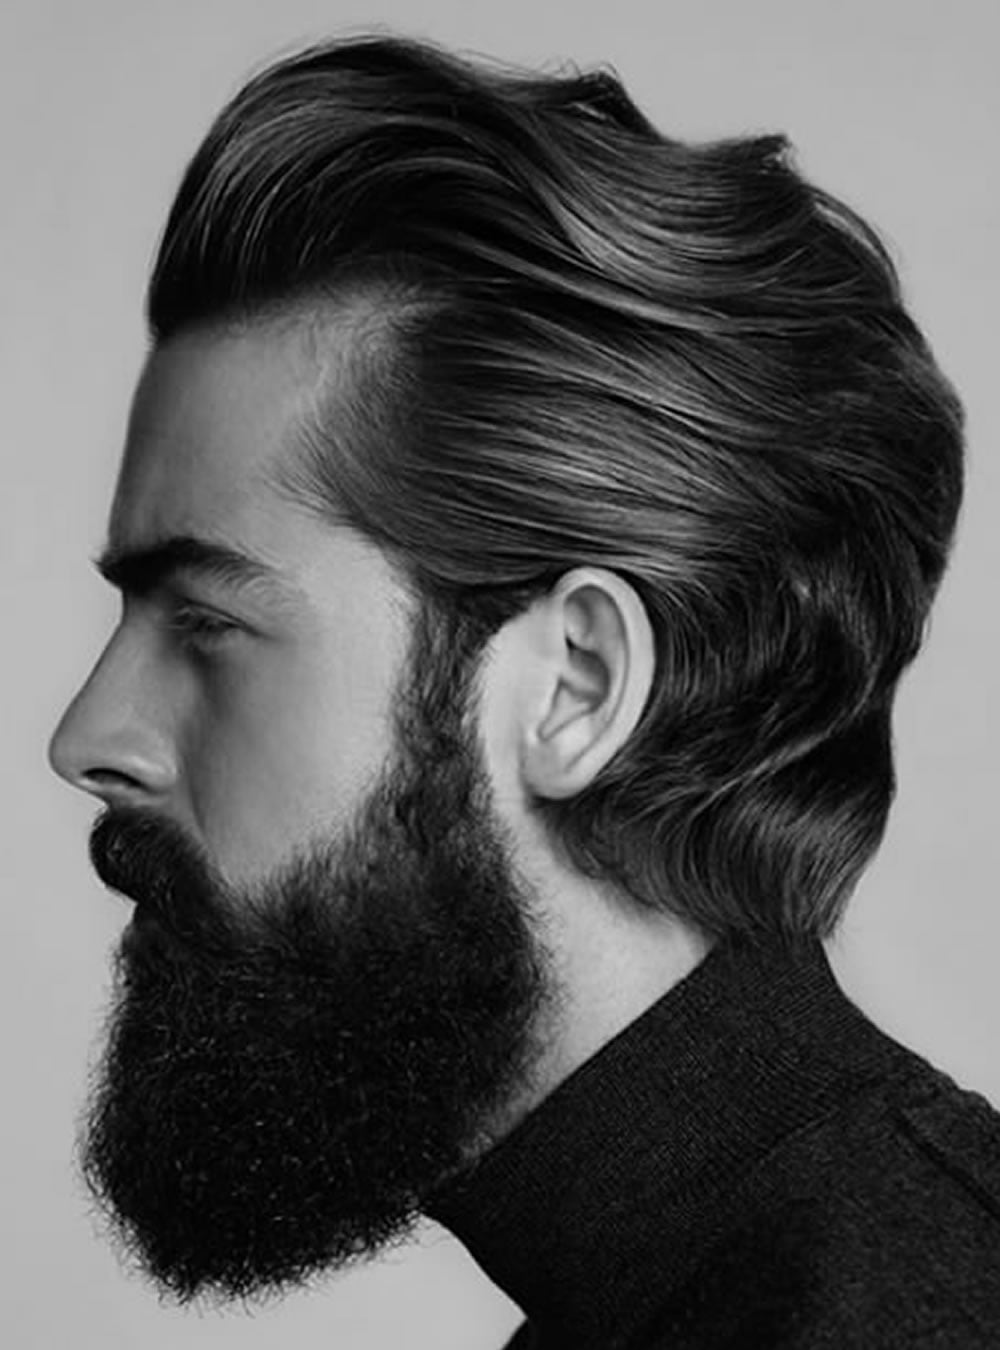 Pompadour Hairstyles for Men 2018 - Modern, Fade, Big Volume, Side Part Etc